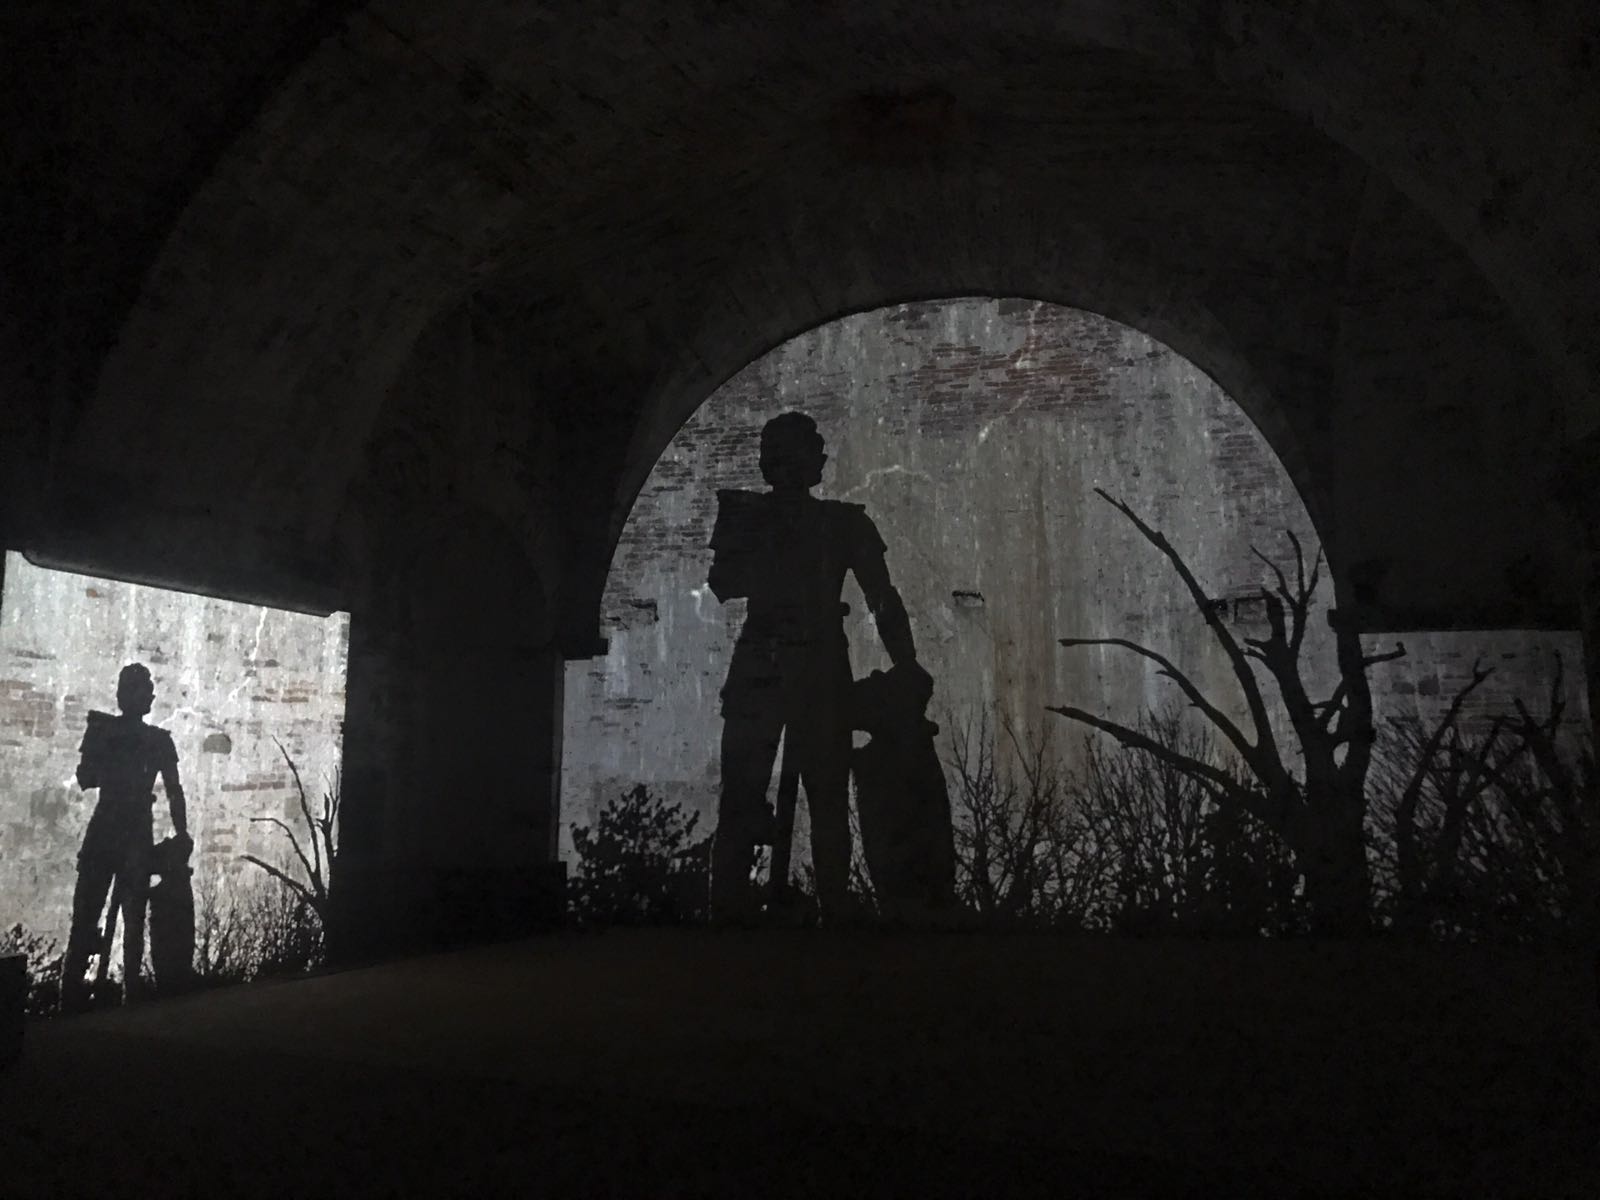 Projections from the story of the Francigena showing a silhouette of a knight